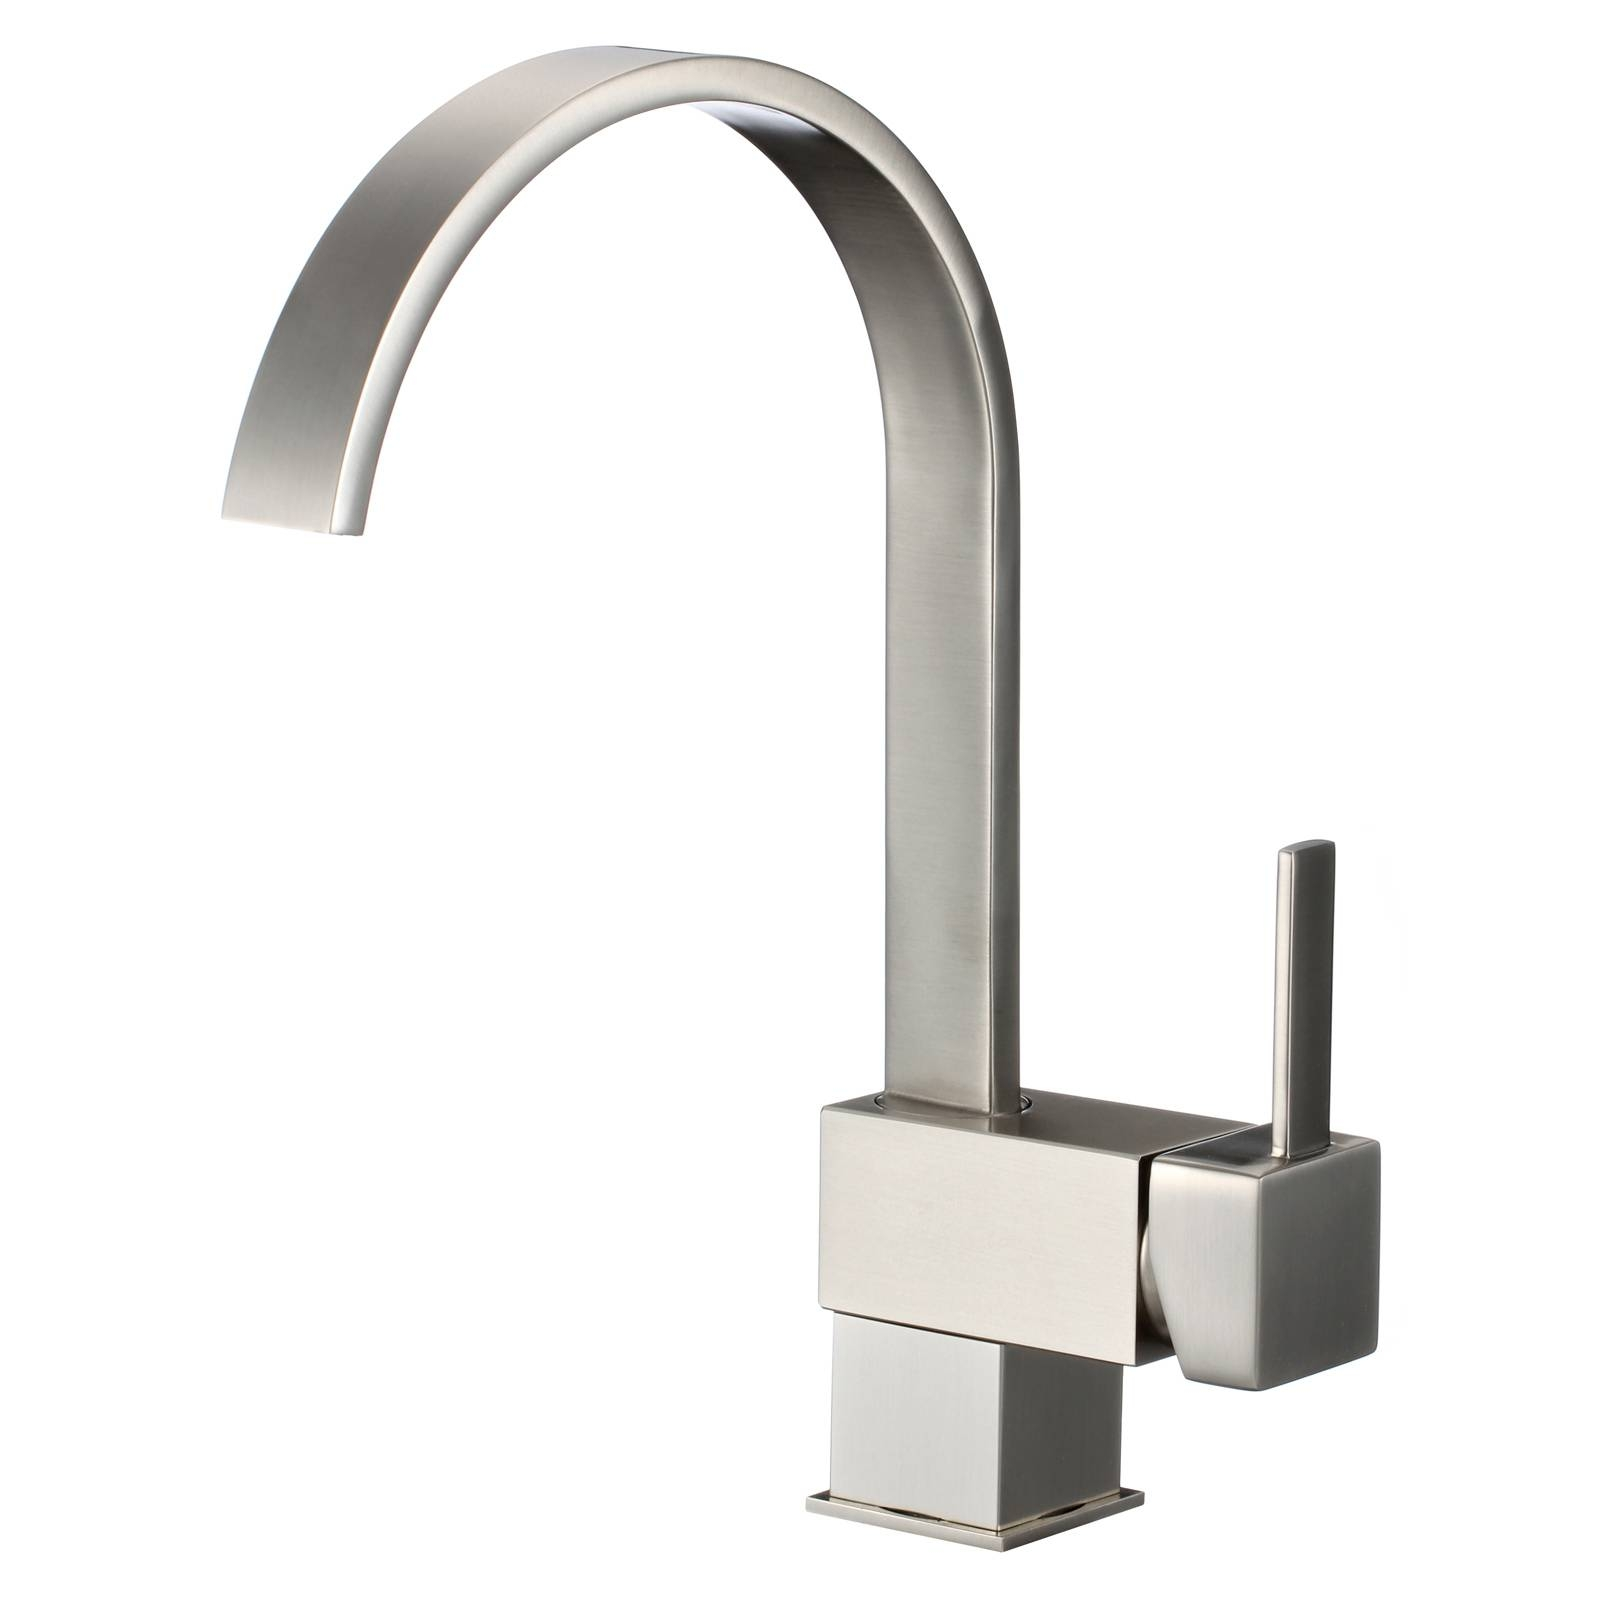 Ideas, kitchen sinks kitchen sink faucet long reach bathroom faucet with intended for measurements 1600 x 1600  .